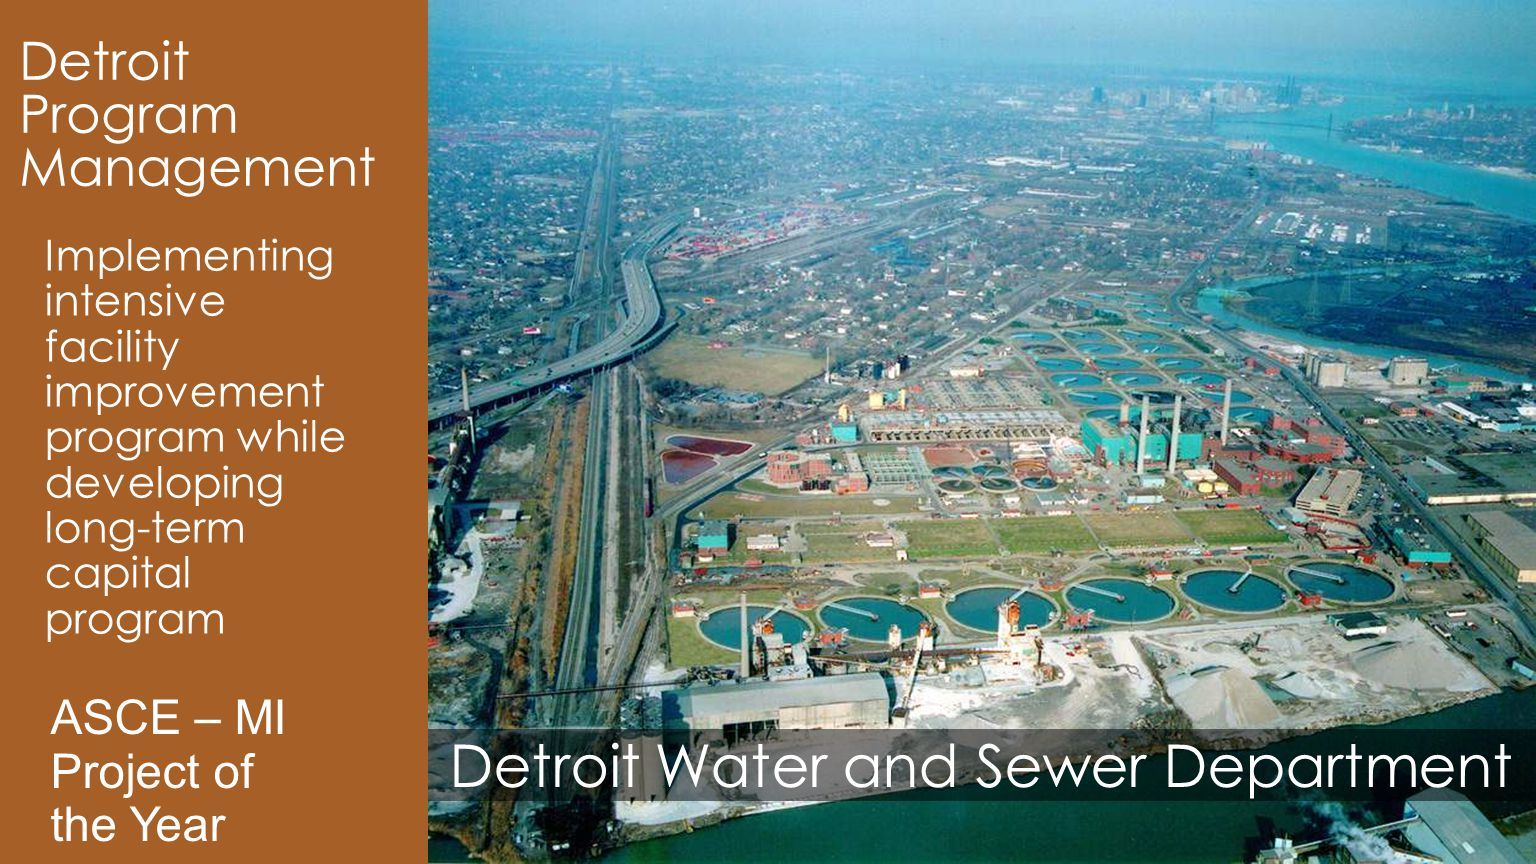 Detroit Water and Sewer Department Detroit Program Management Implementing intensive facility improvement program while developing long-term capital program ASCE – MI Project of the Year